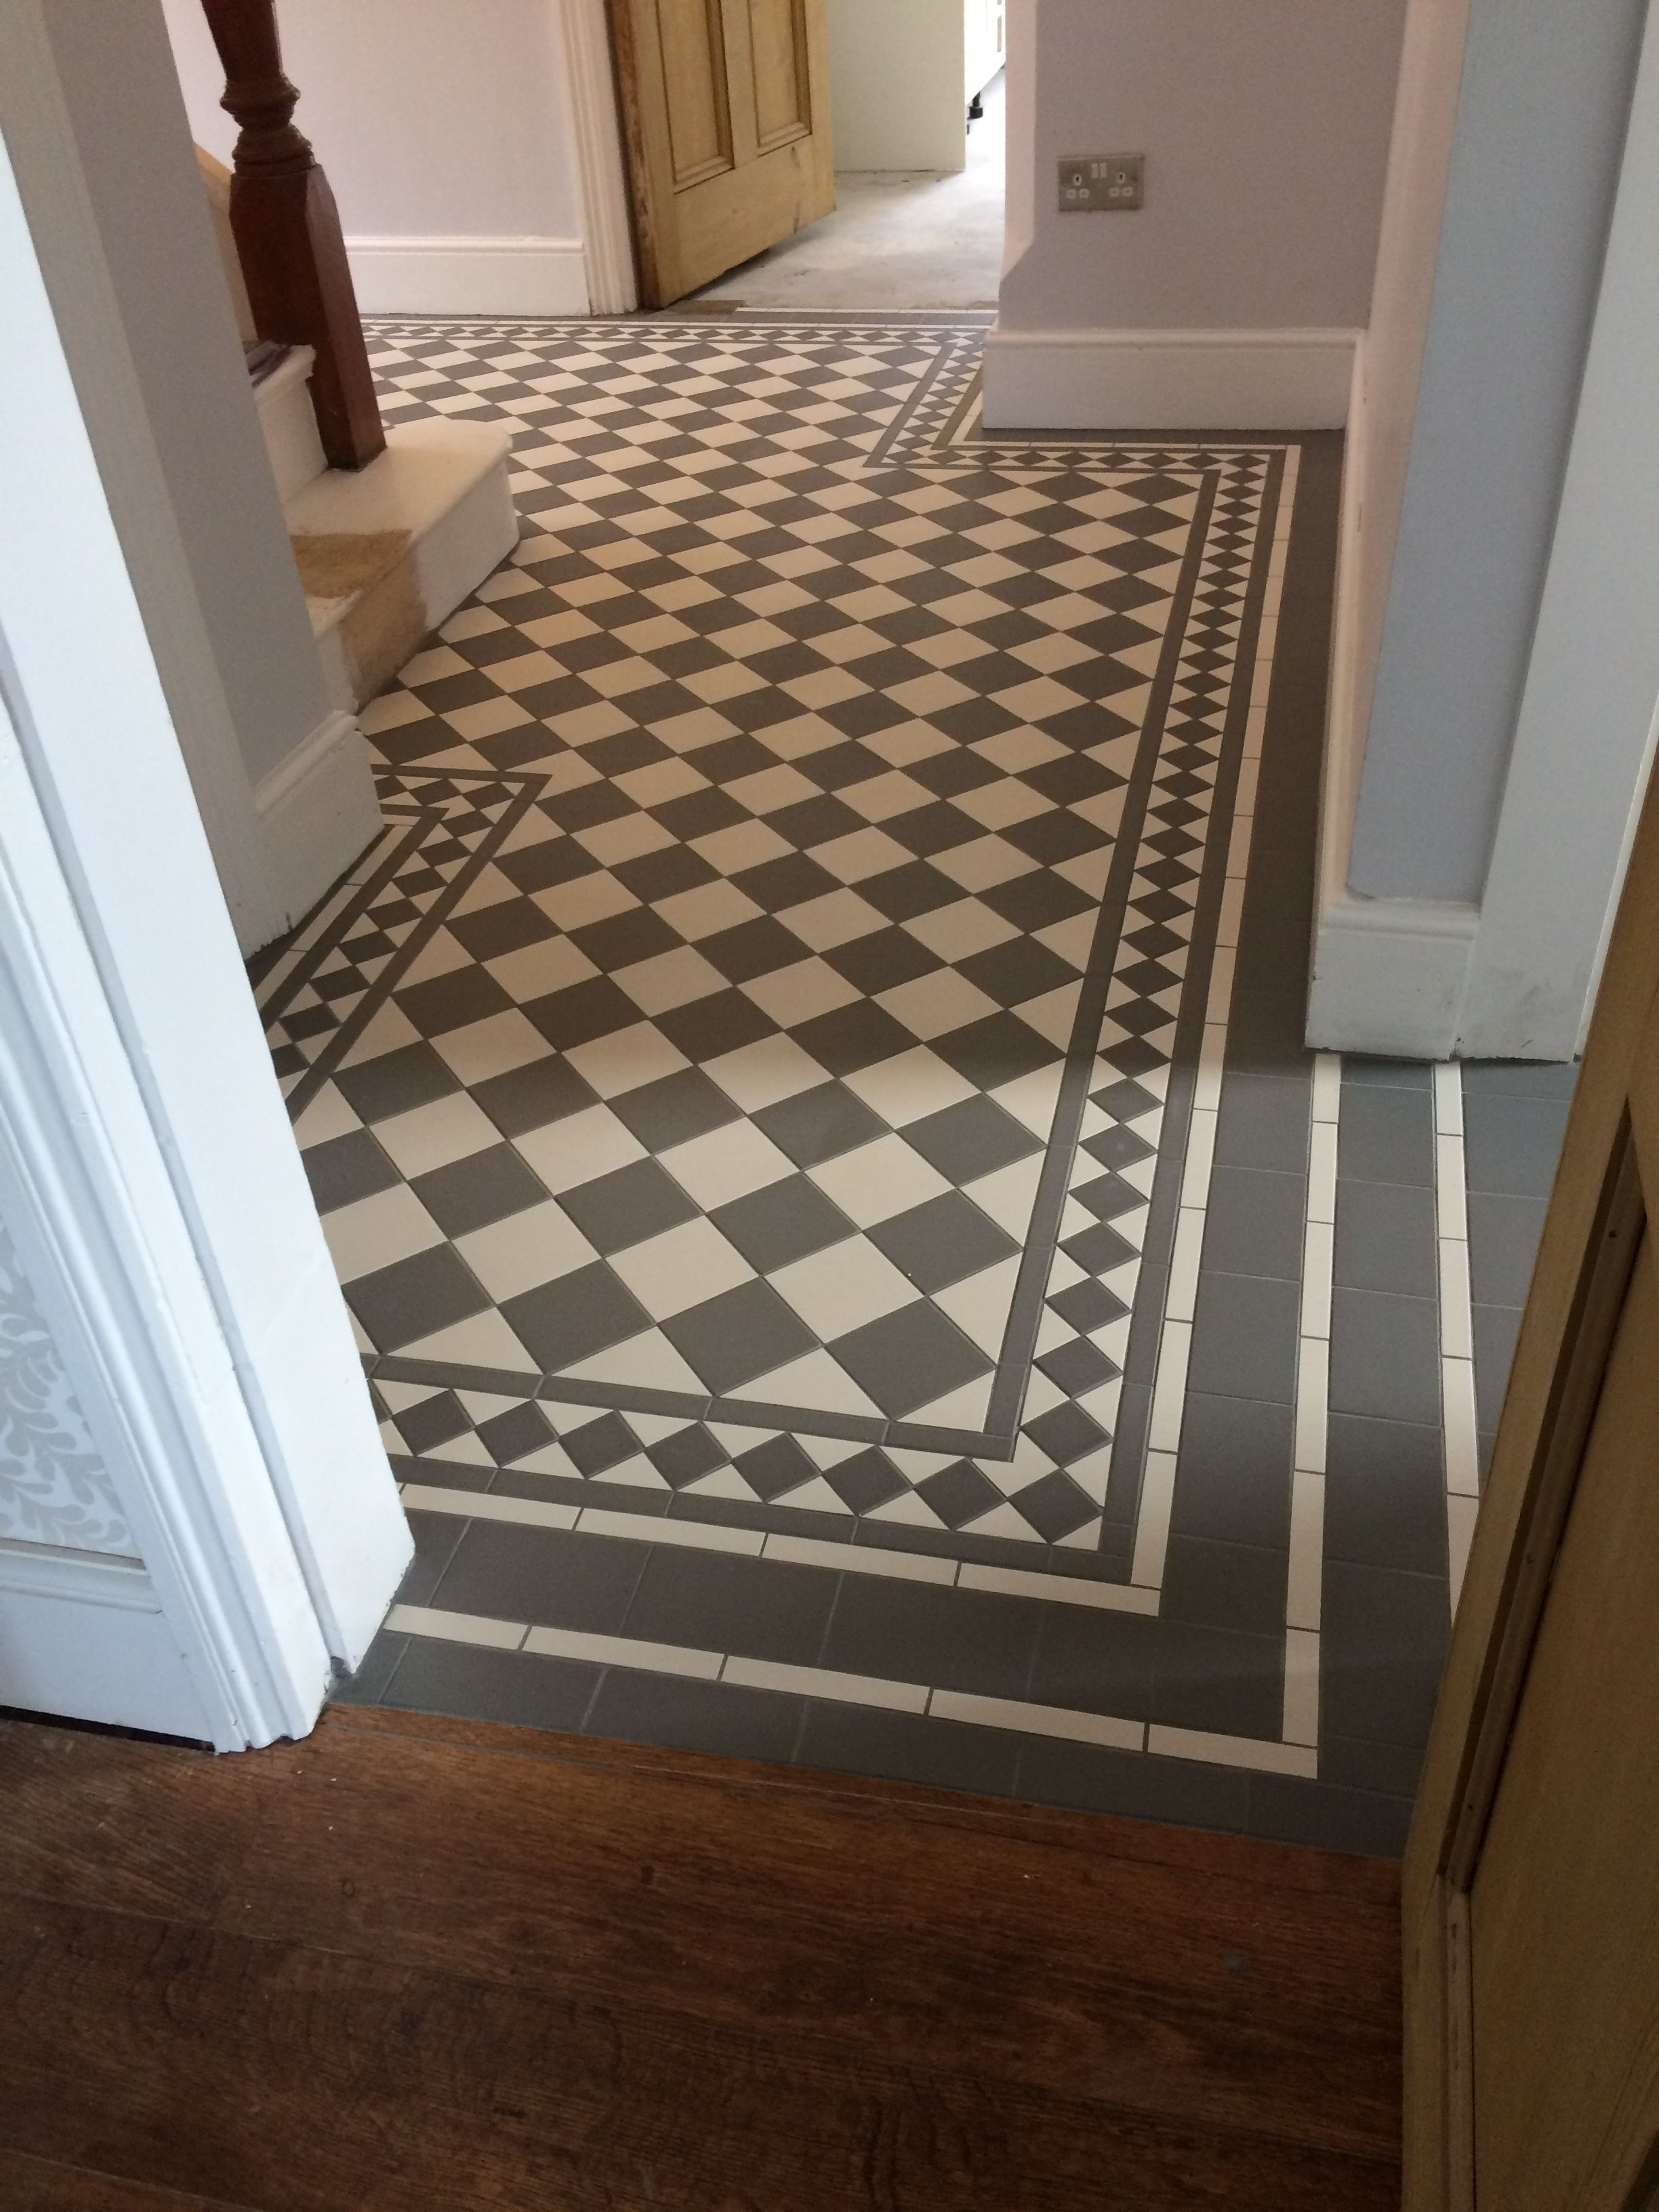 Victorian Floor Tiles Gallery Original Style Floors Period